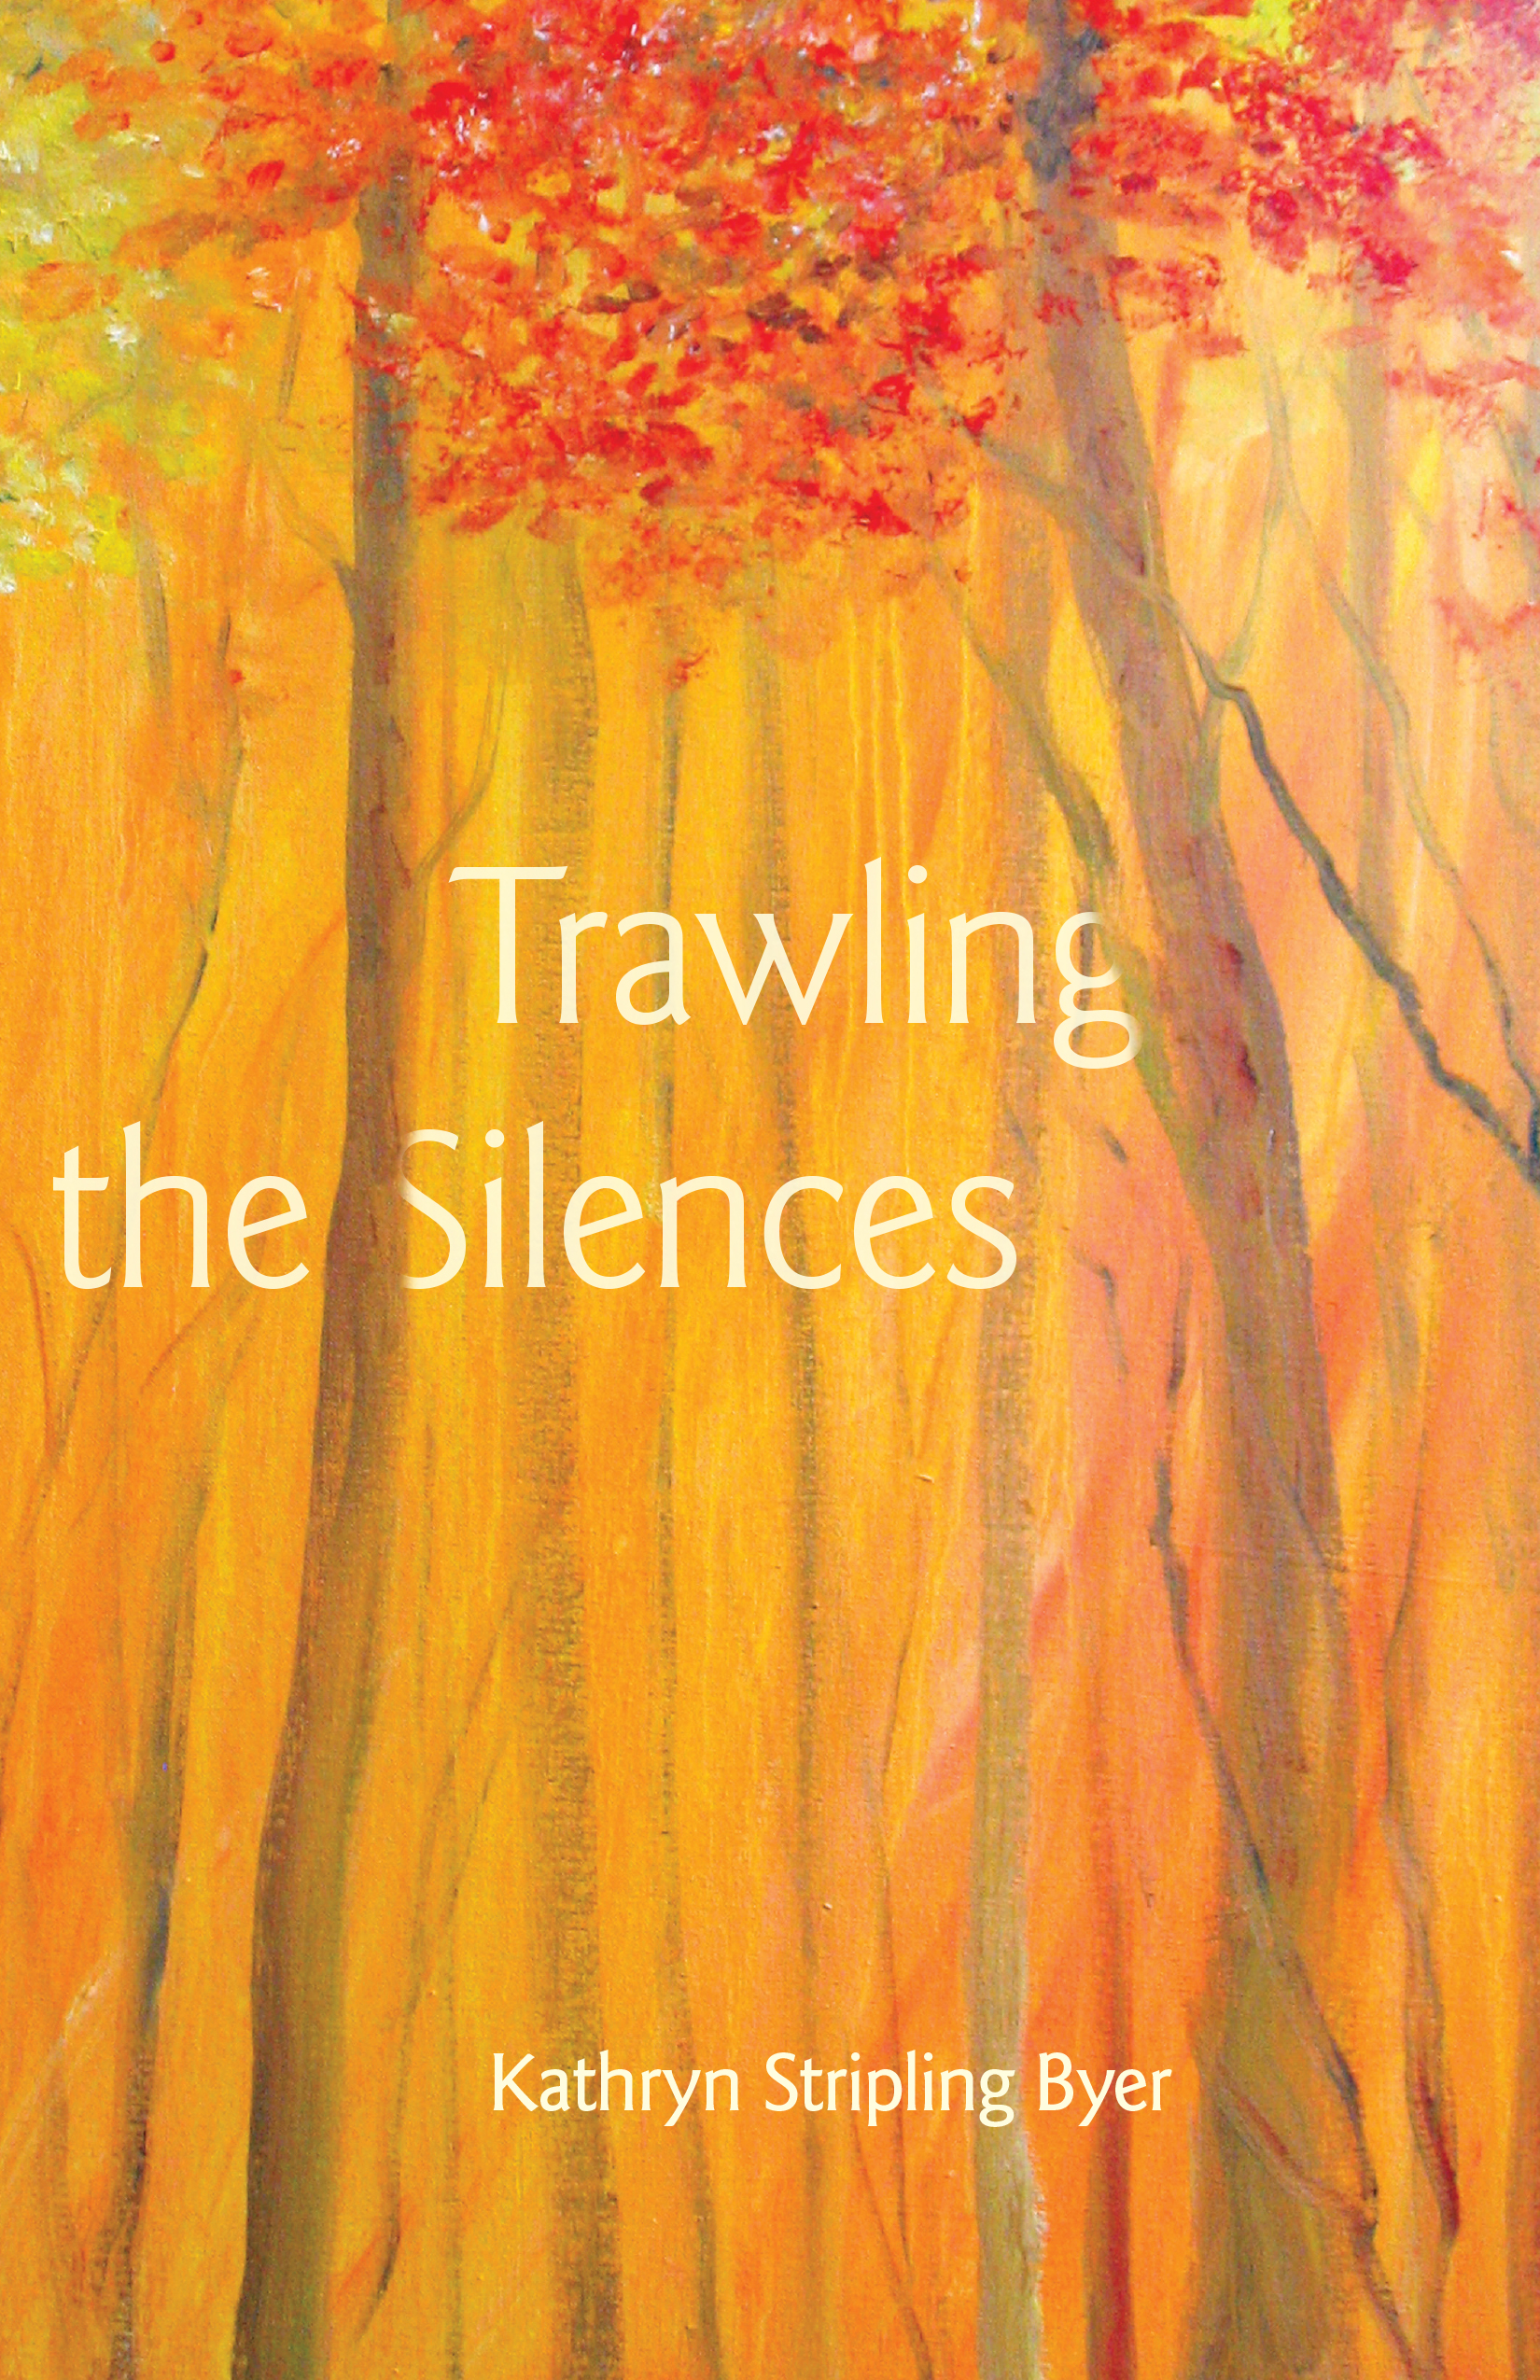 Trawling the Silences